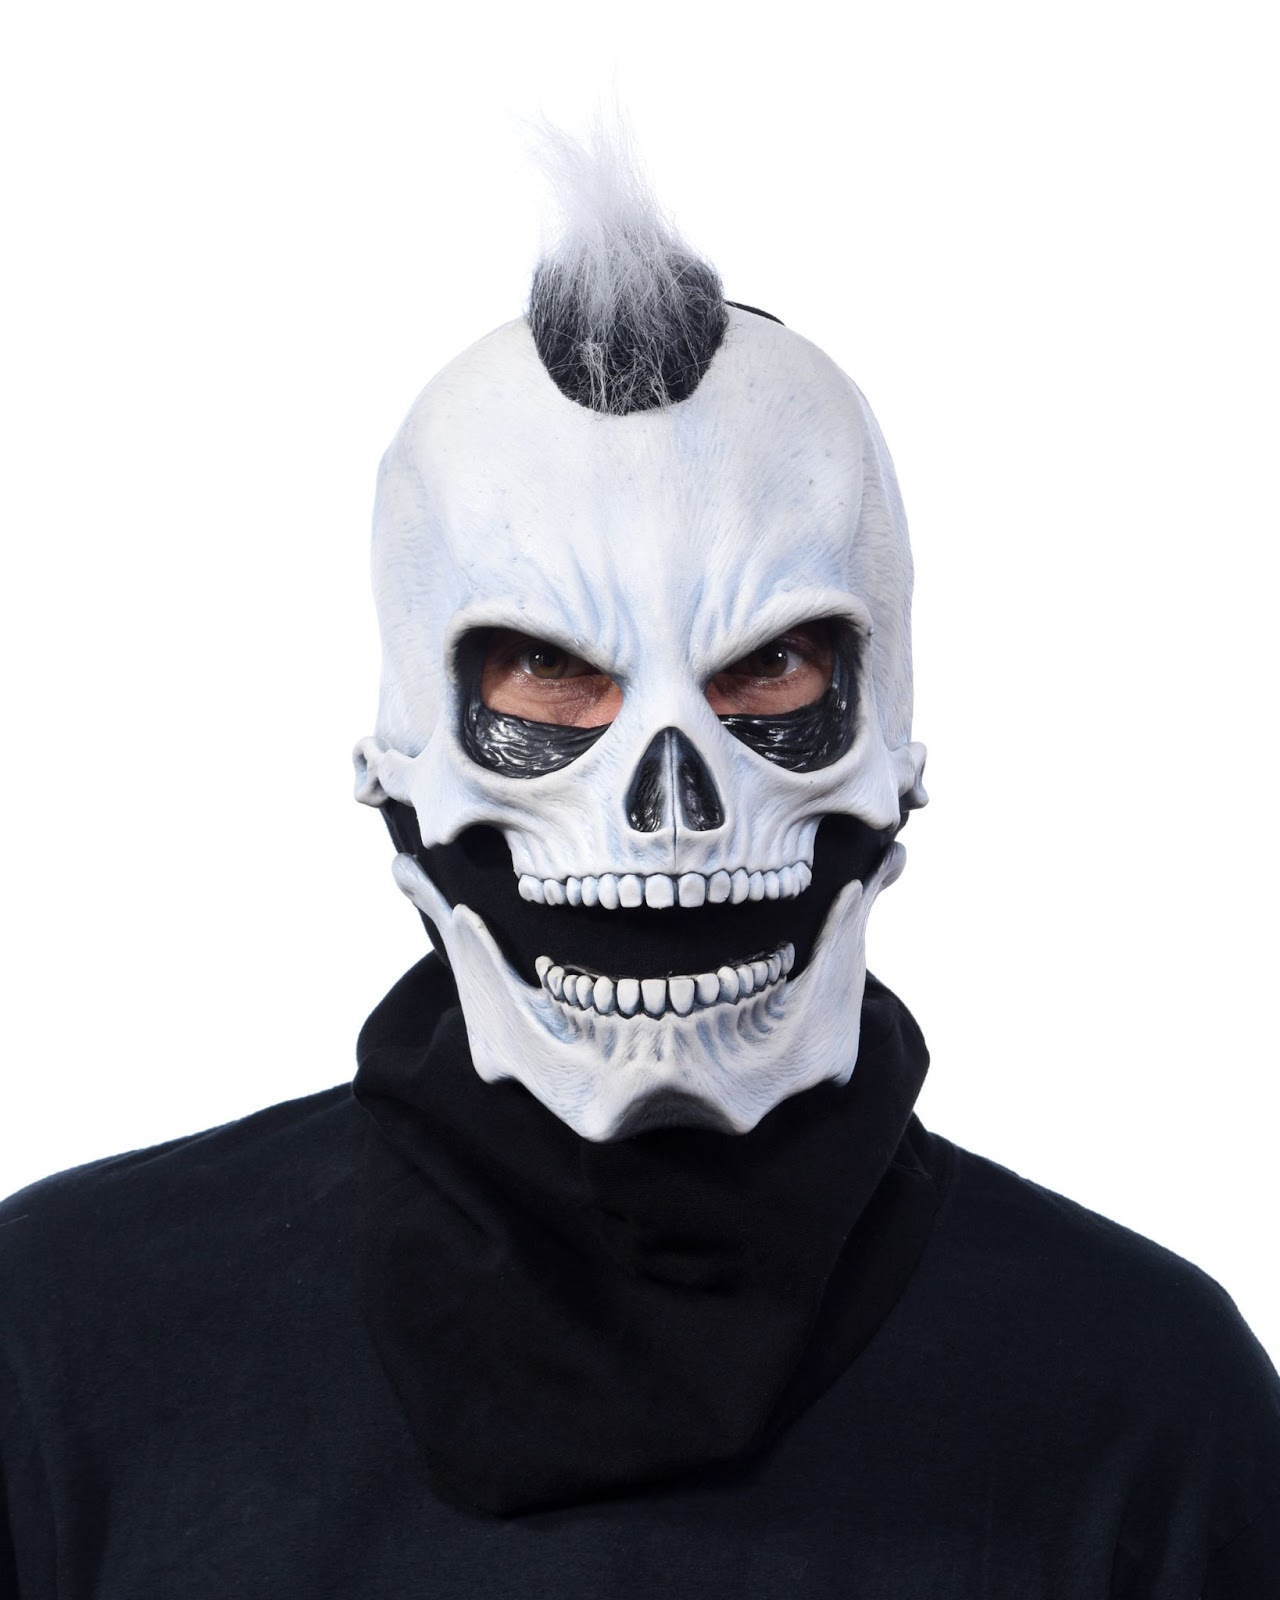 Skeleton Mask with moveable mouth